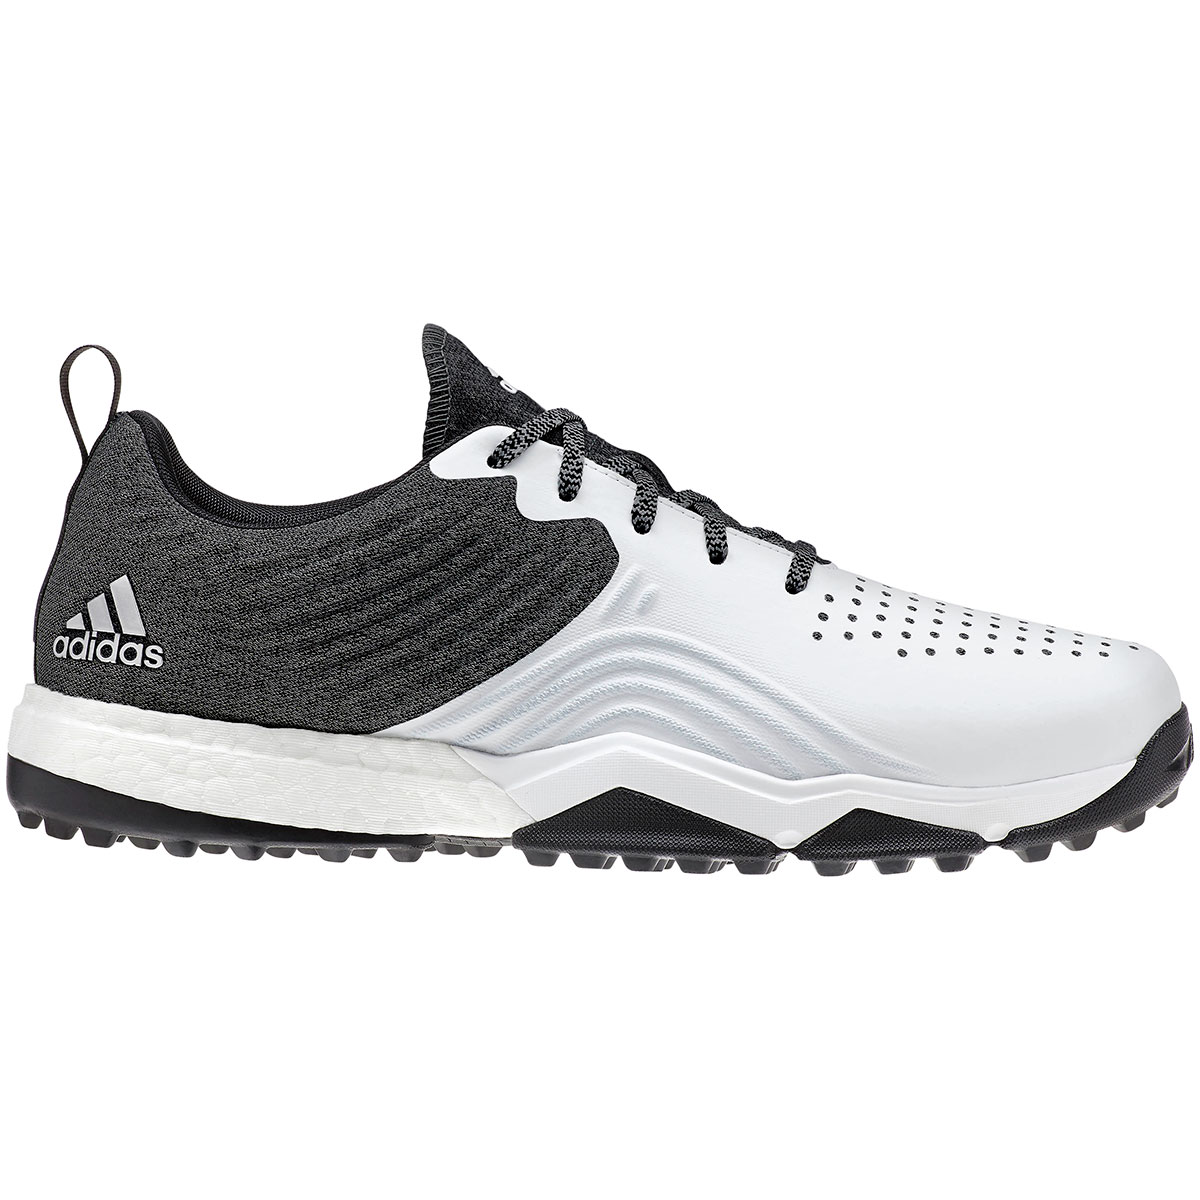 best cheap 6f2a8 69c47 ... low cost adidas adipower 4orged s w8 6e5c4 2e54e